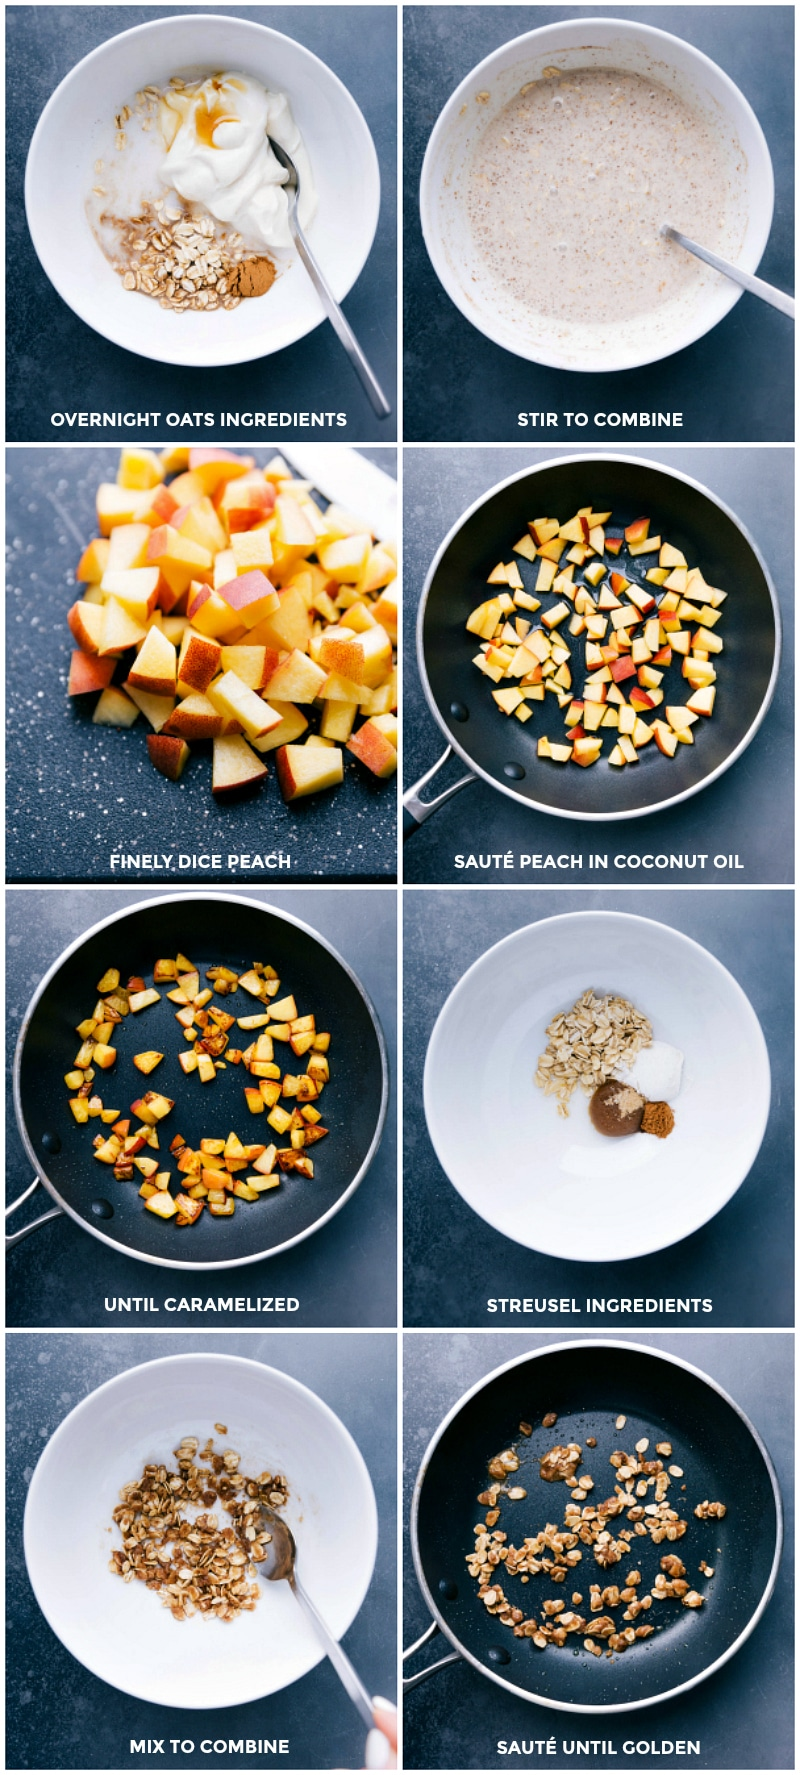 Process shots-- images of all the ingredients being mixed together for Peach Overnight Oats; the fresh peaches being caramelized; and the streusel being prepared.